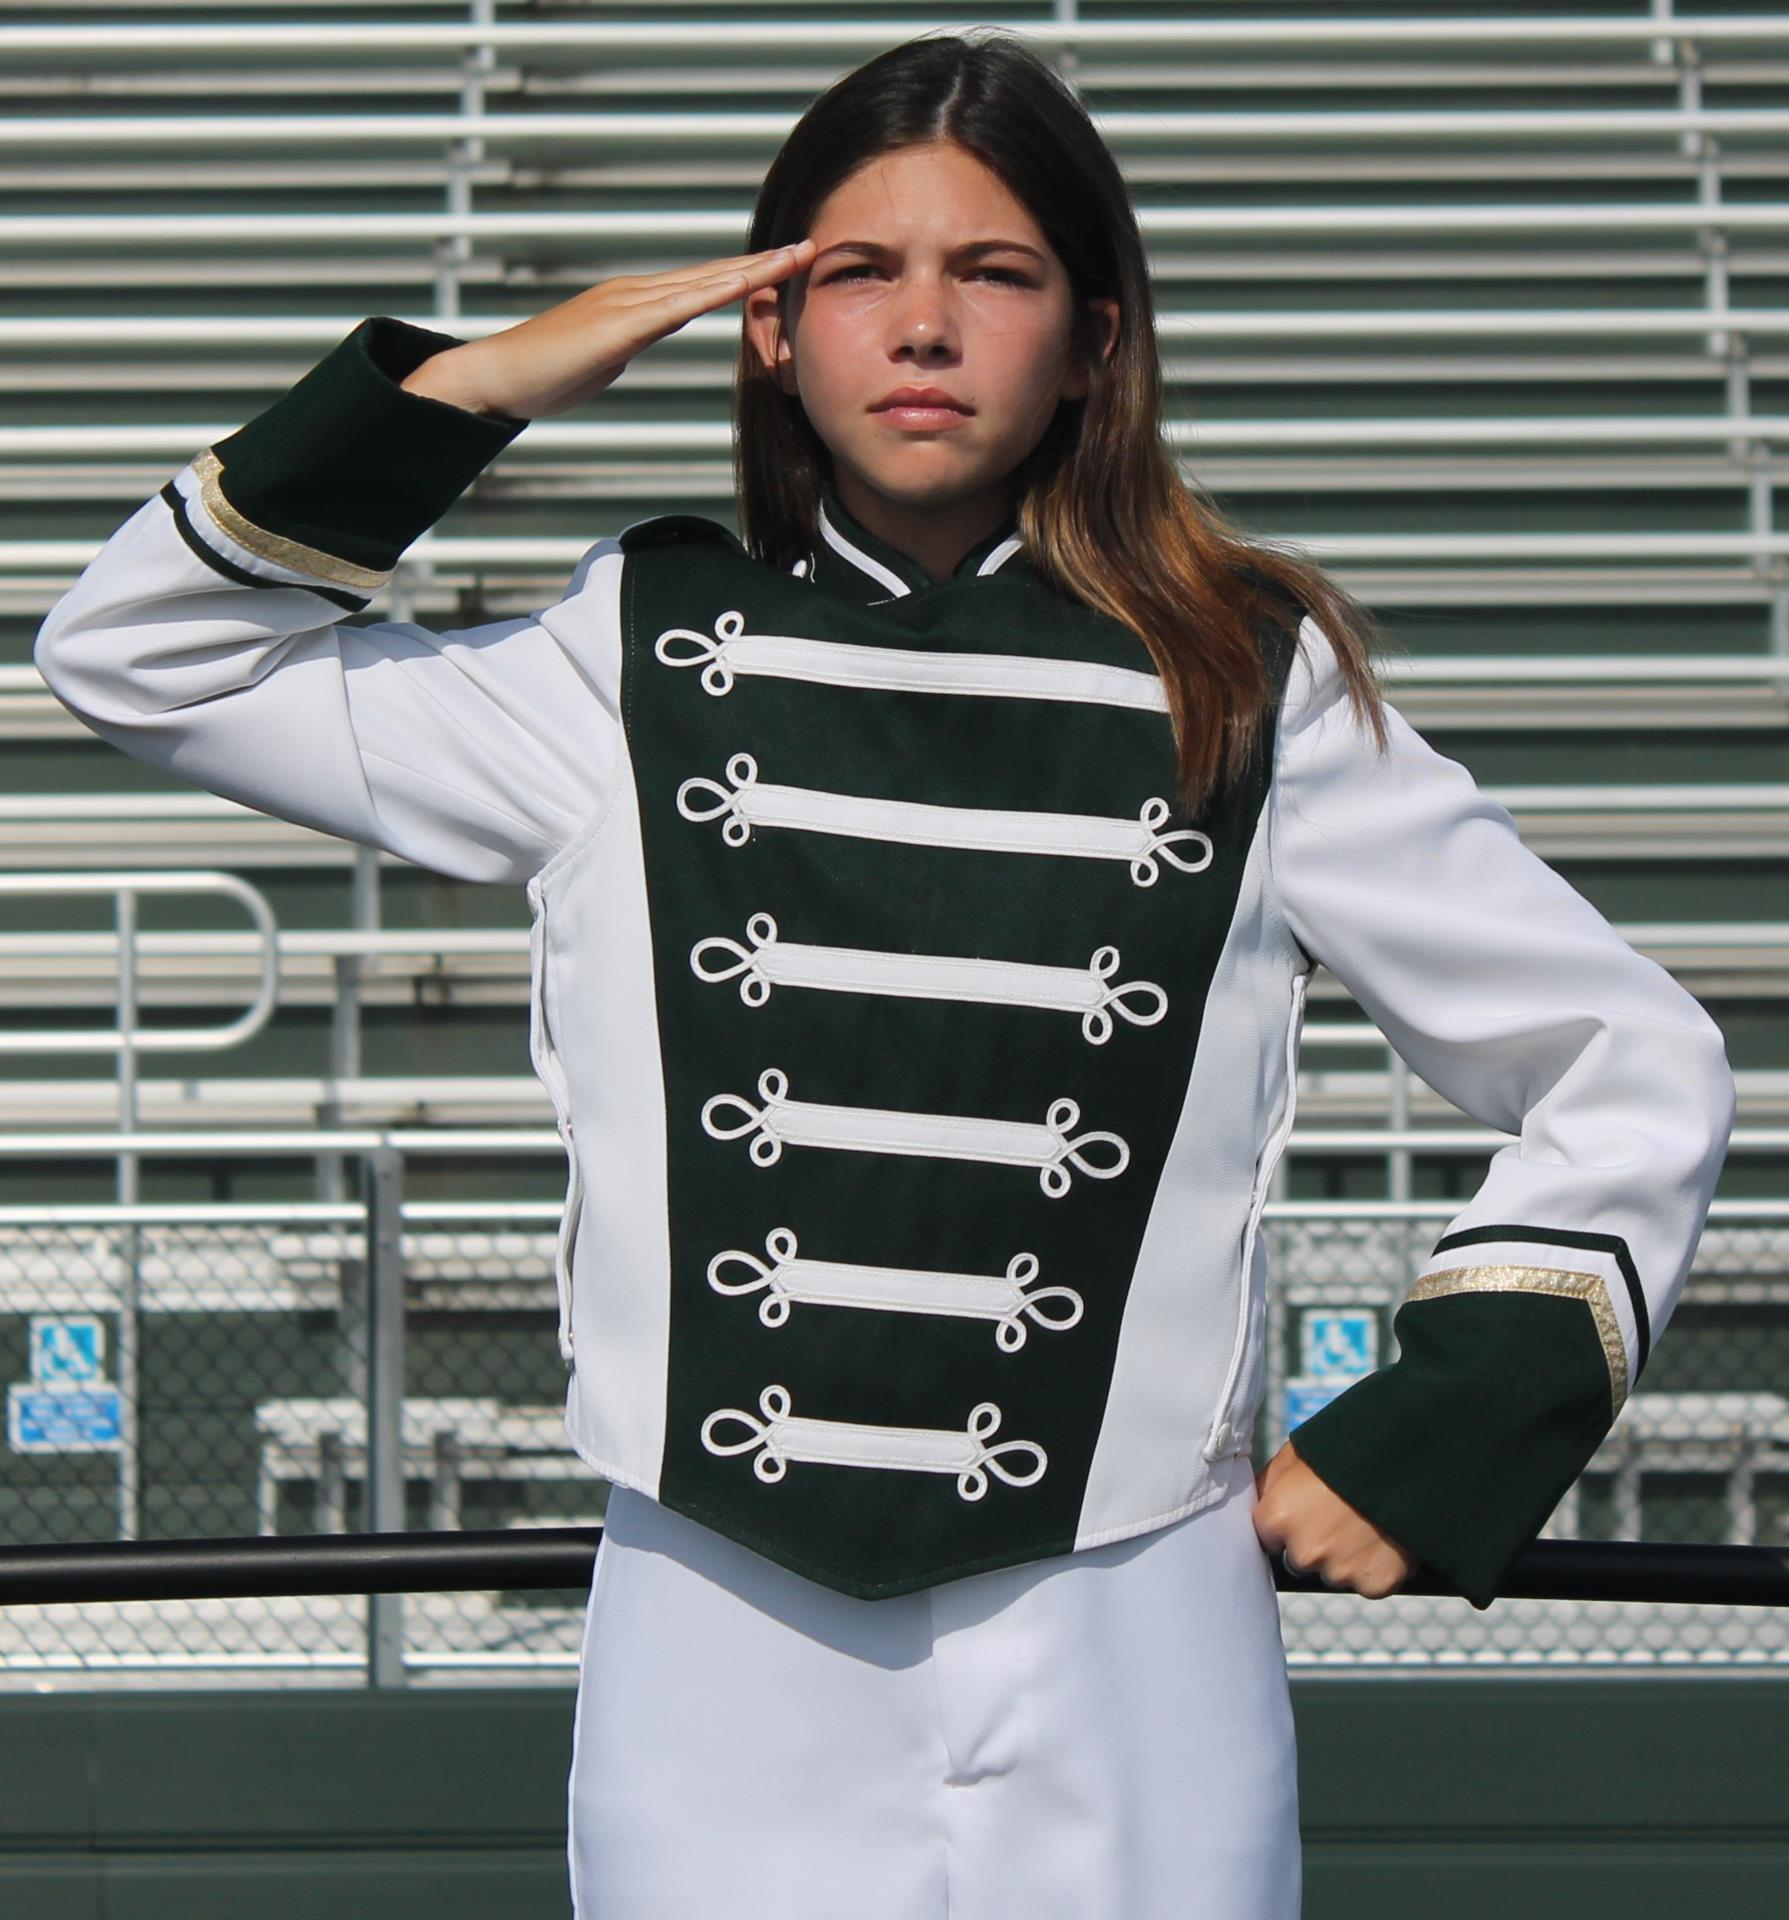 Senior Field Commander Elizabeth Jenkins